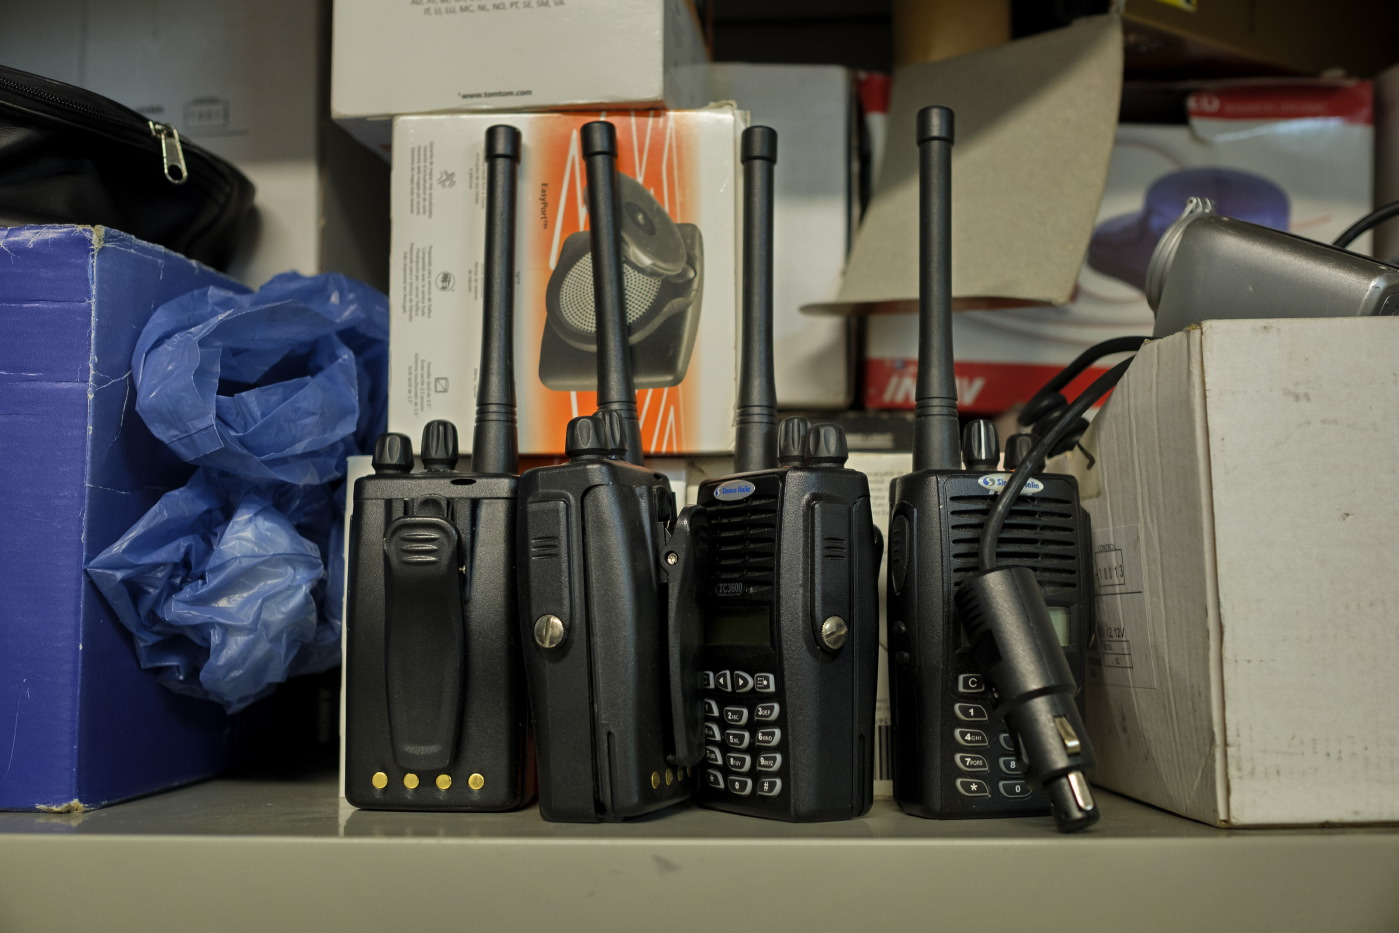 Some handheld transceivers in the local control office of the Guardia di Finanza (Financial Police) in Lecce, Italy 2016. © Matteo Bastianelli